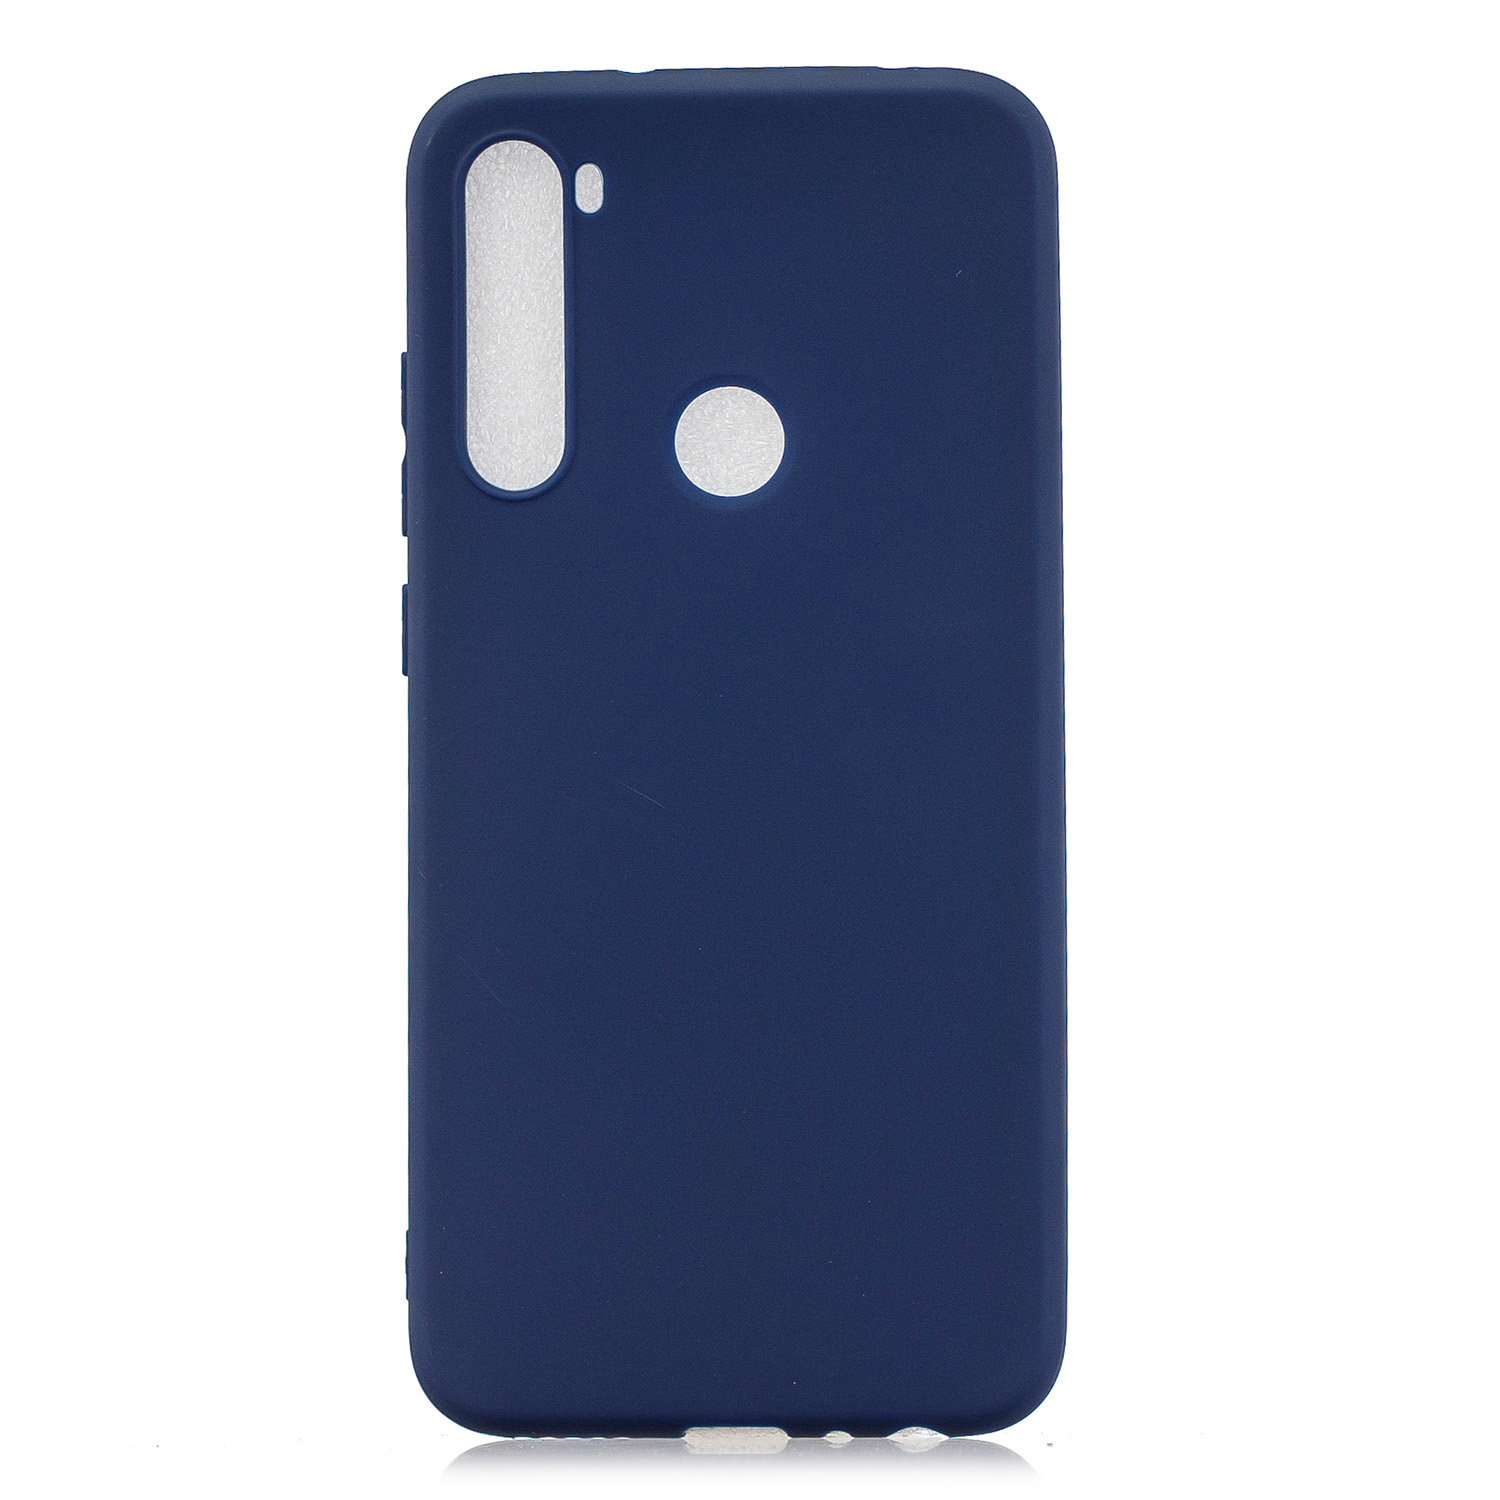 For Redmi NOTE 8 NOTE 8 Pro Soft Candy Color Frosted Surface Shockproof TPU Back Cover Mobile Phone Case Navy